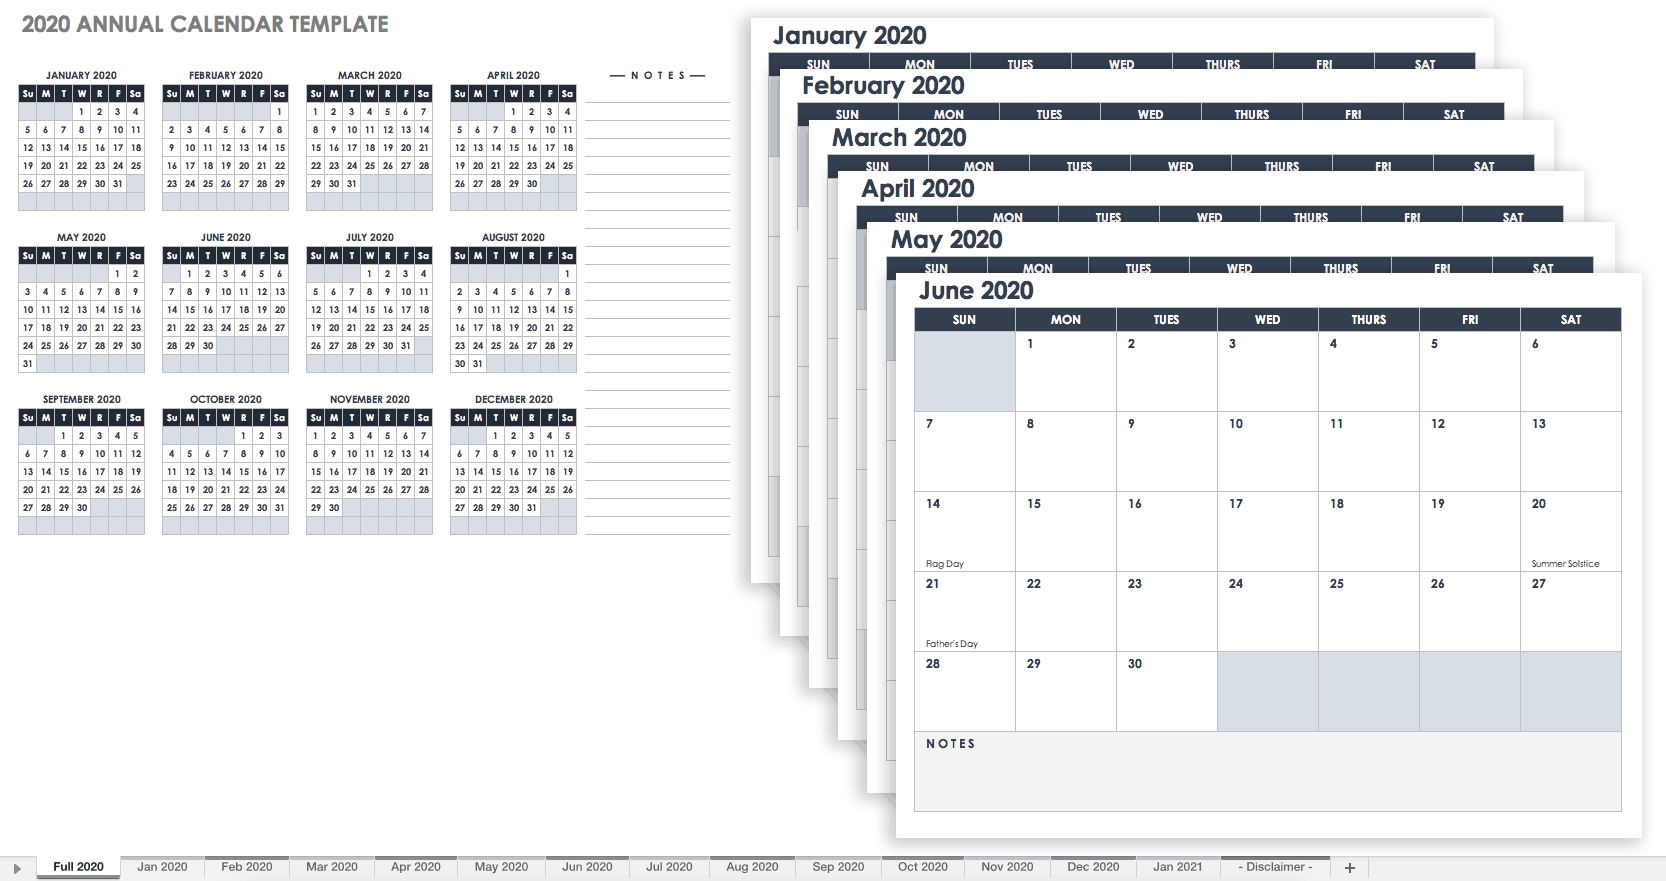 Free Blank Calendar Templates - Smartsheet 3 Months Per Page Calendar With Small Numbers